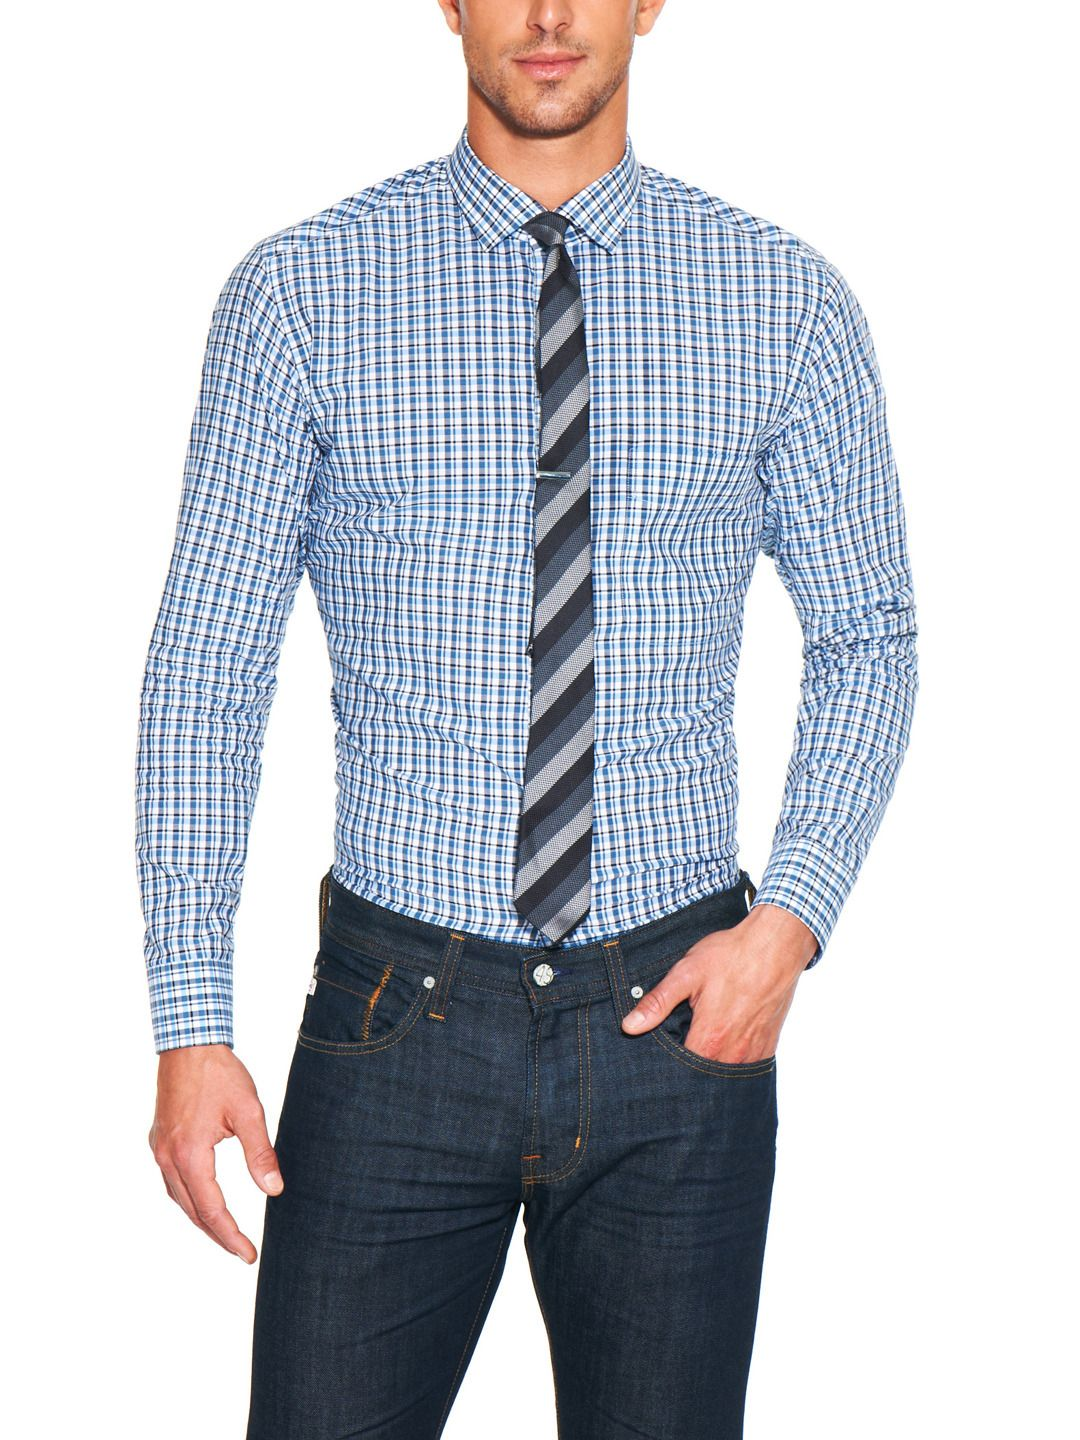 skinny striped tie with skinny gingham shirt BUT you must ...